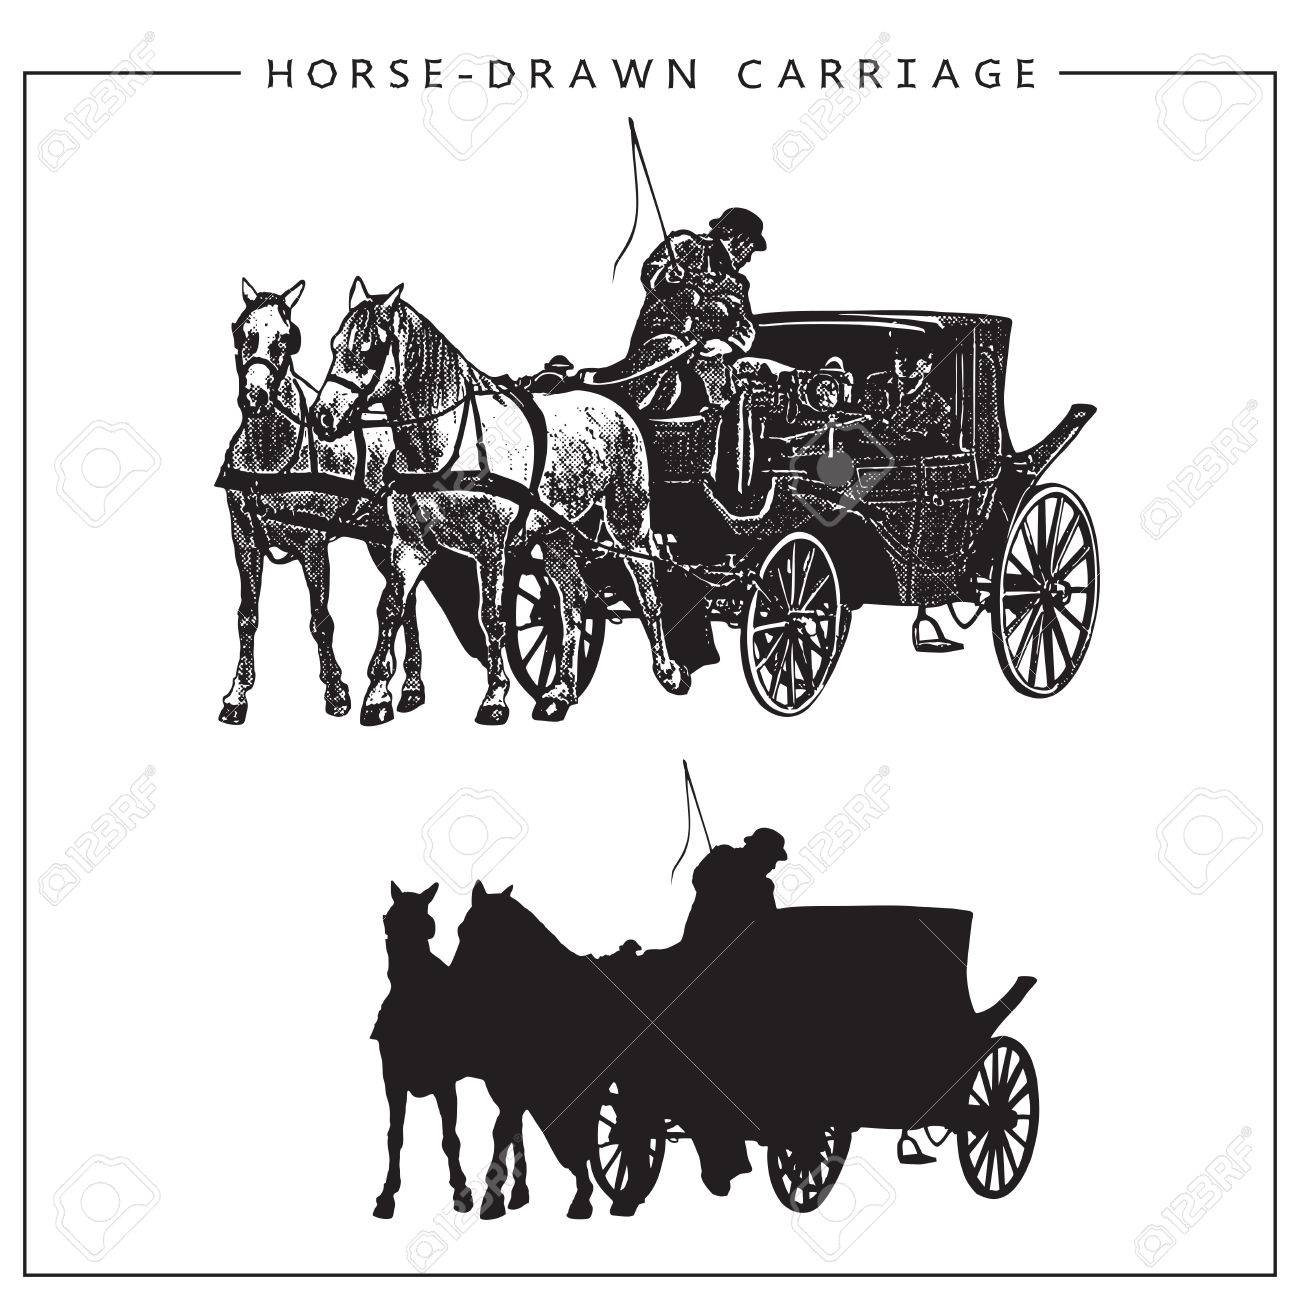 Illustration Of Horse Drawn Carriage Horse Cart With Coachman Royalty Free Cliparts Vectors And Stock Illustration Image 68334833